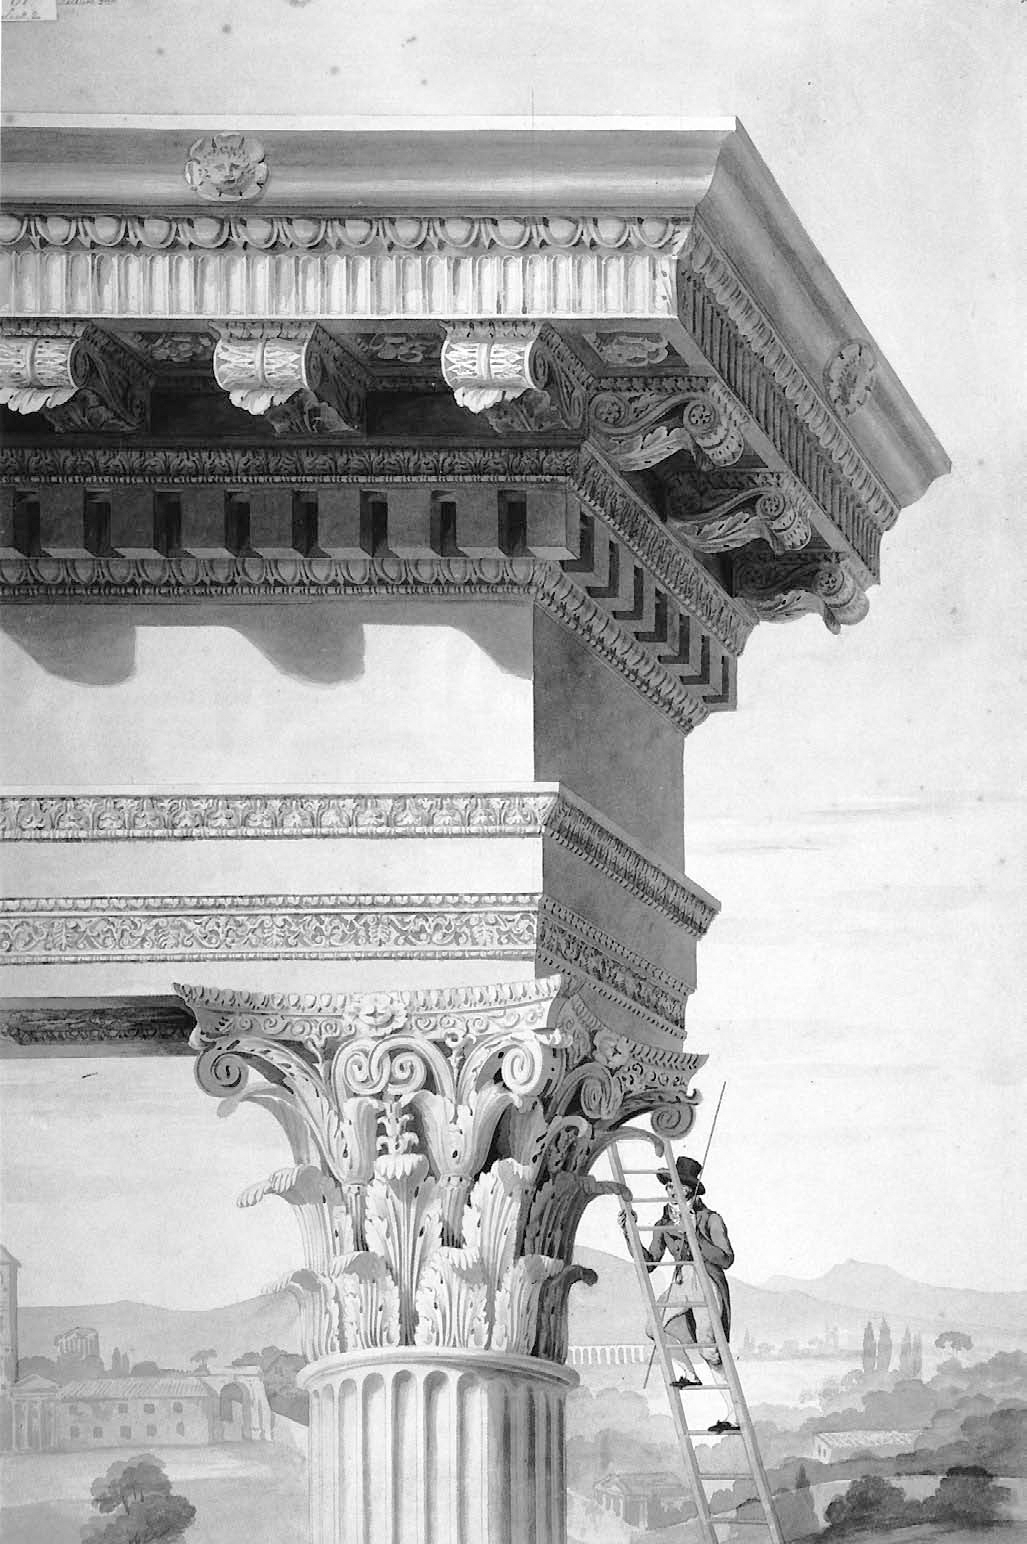 This drawing taken from Roman Forum by David Watkin is by Henry Parke (c. 1810) and shows a student of architecture climbing up to the top of the Temple of Castor and Pollux, measuring rod in hand. The drawing shows an idealized temple, not the ruin that